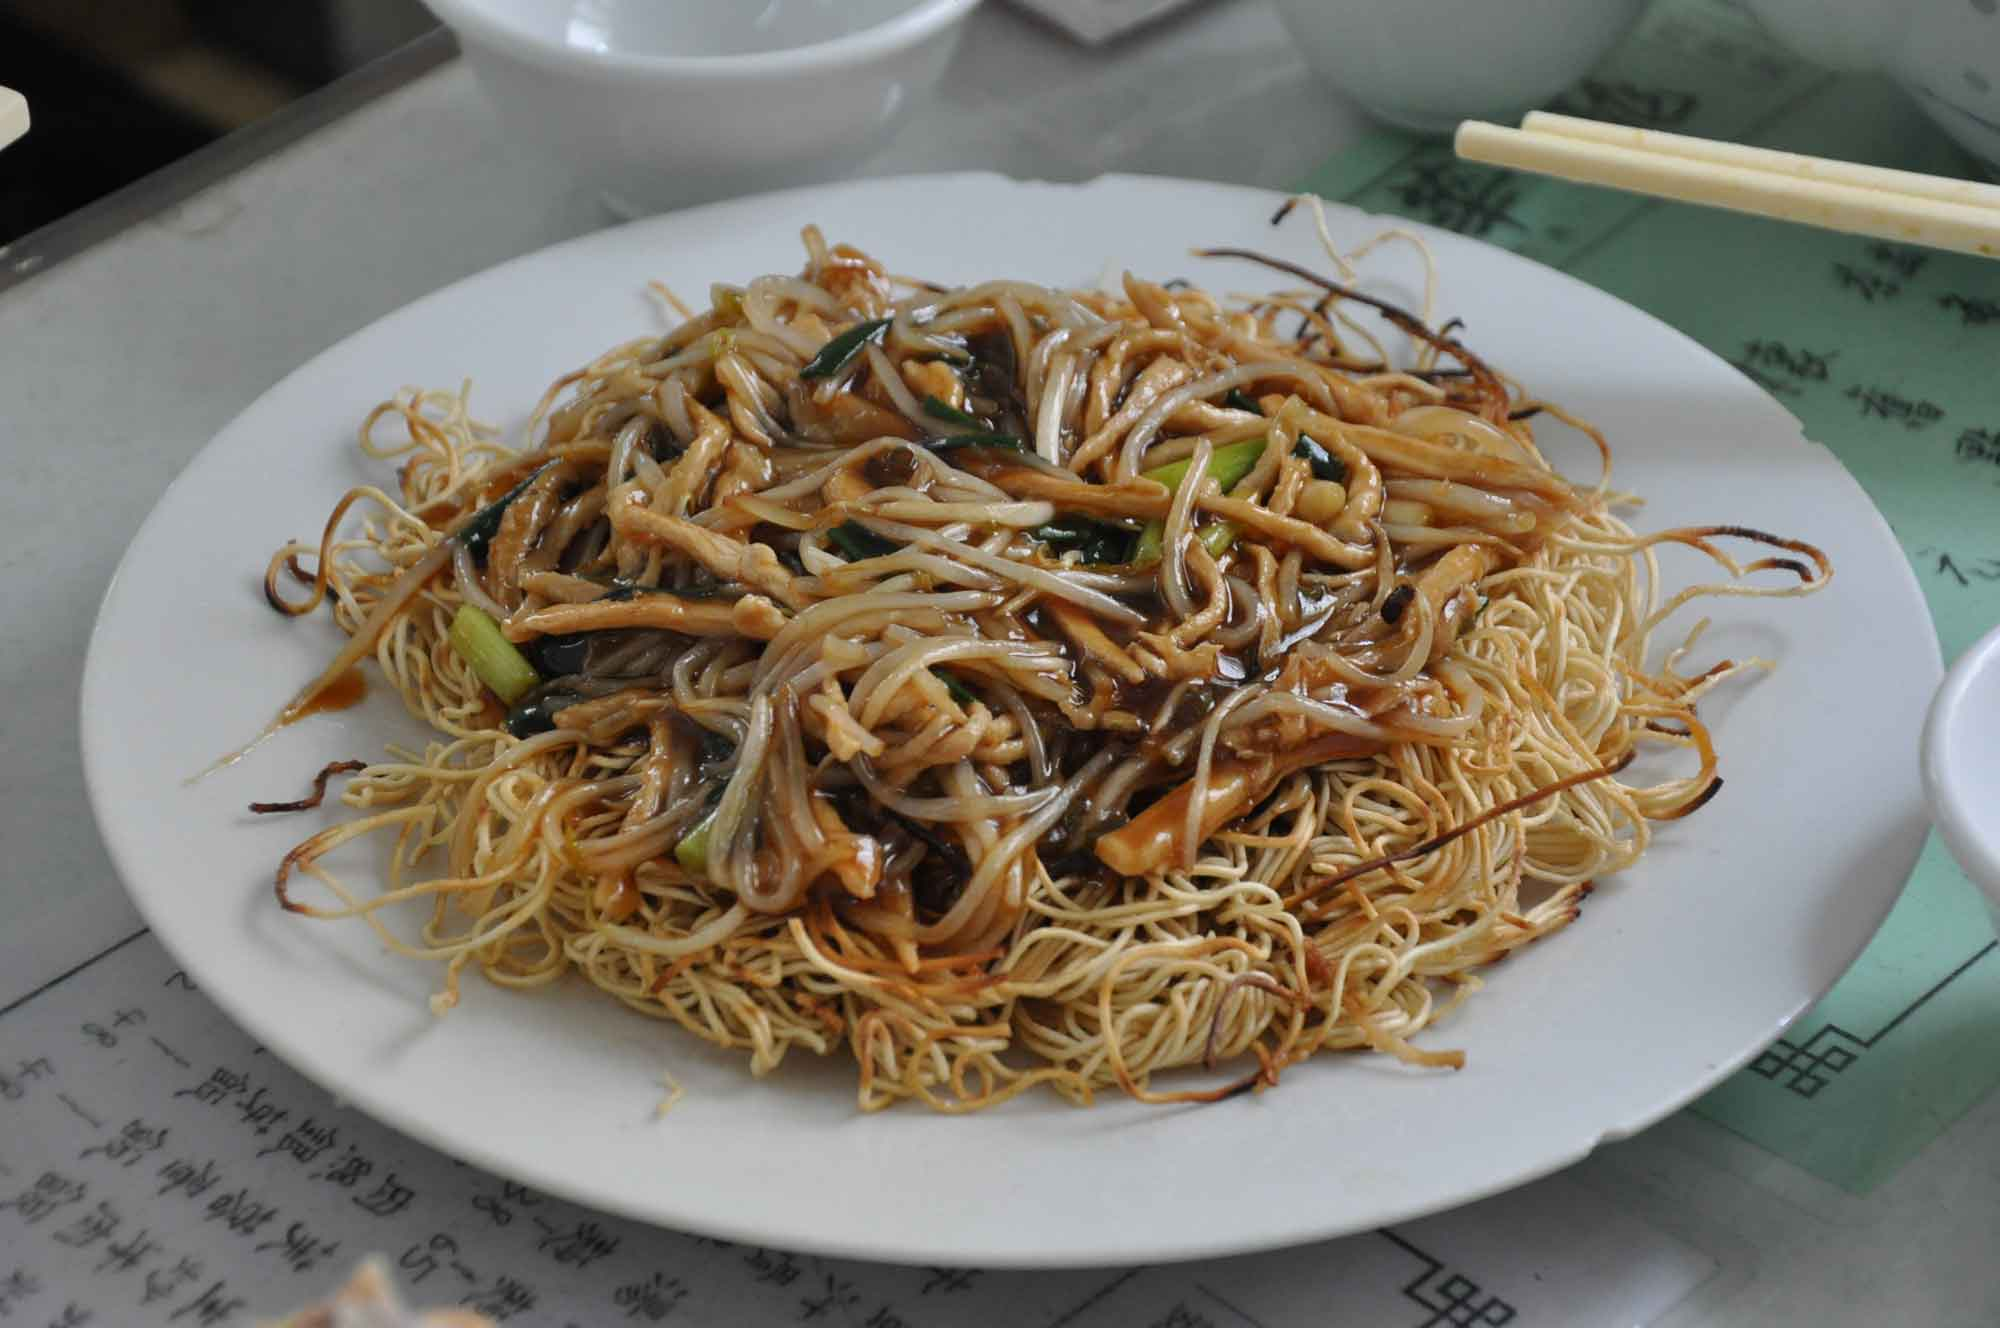 Long Wa Teahouse Stir Fried Noodles with Vegetables